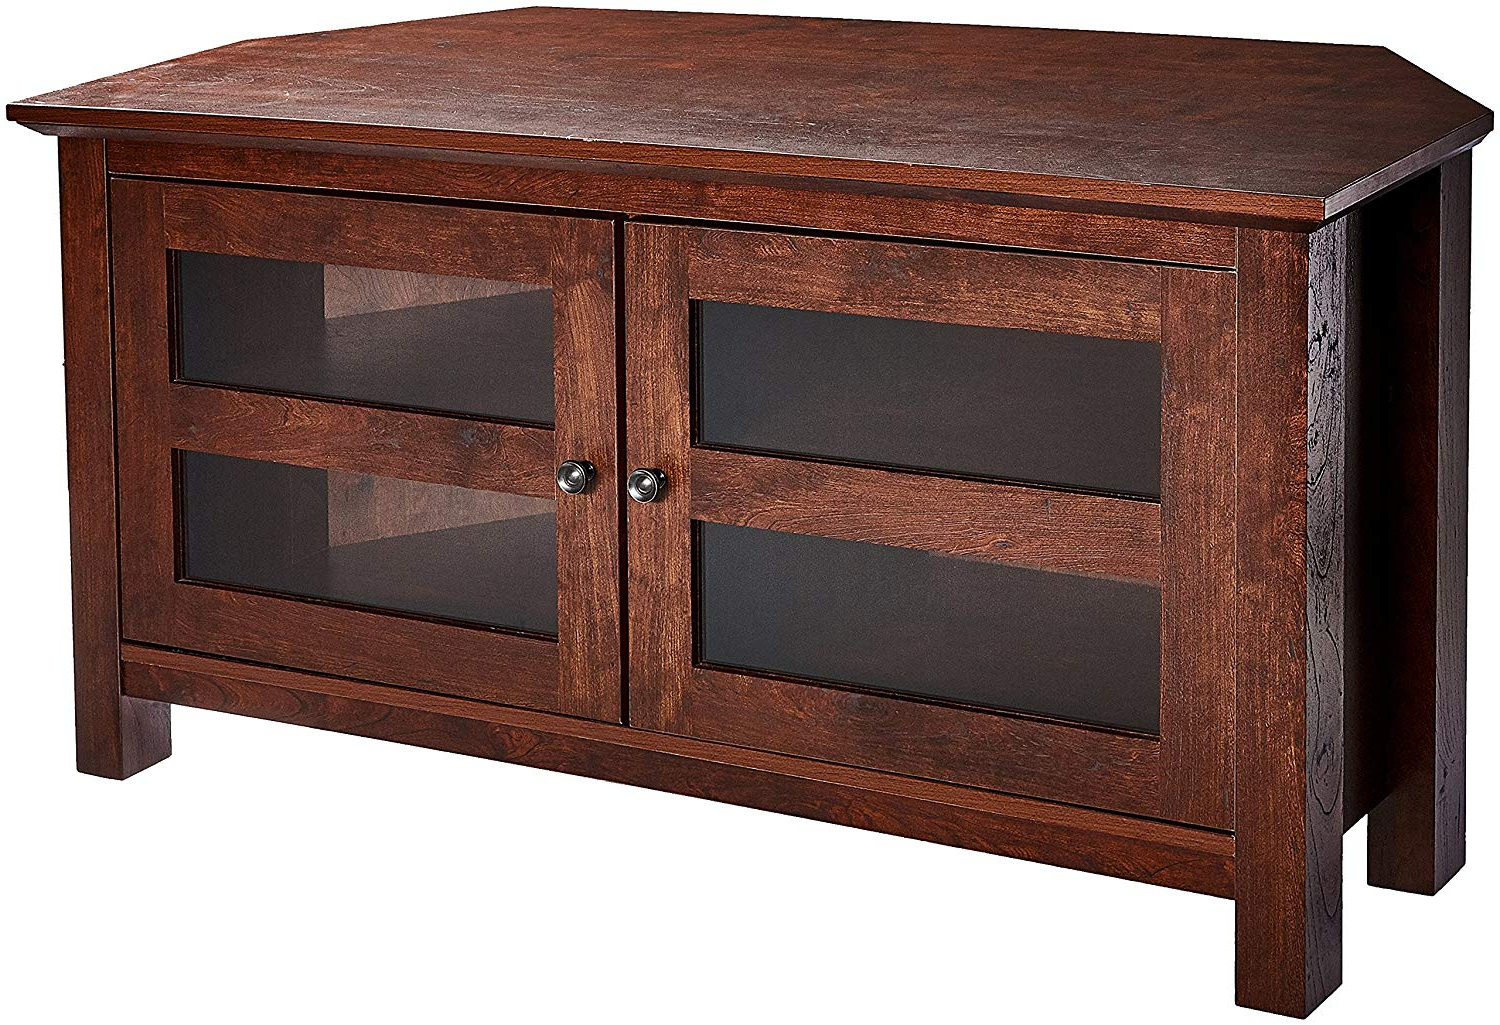 55 Inch Corner Tv Stands Throughout Most Recently Released Cheap 55 Inch Corner Tv Stand, Find 55 Inch Corner Tv Stand Deals On (View 13 of 20)